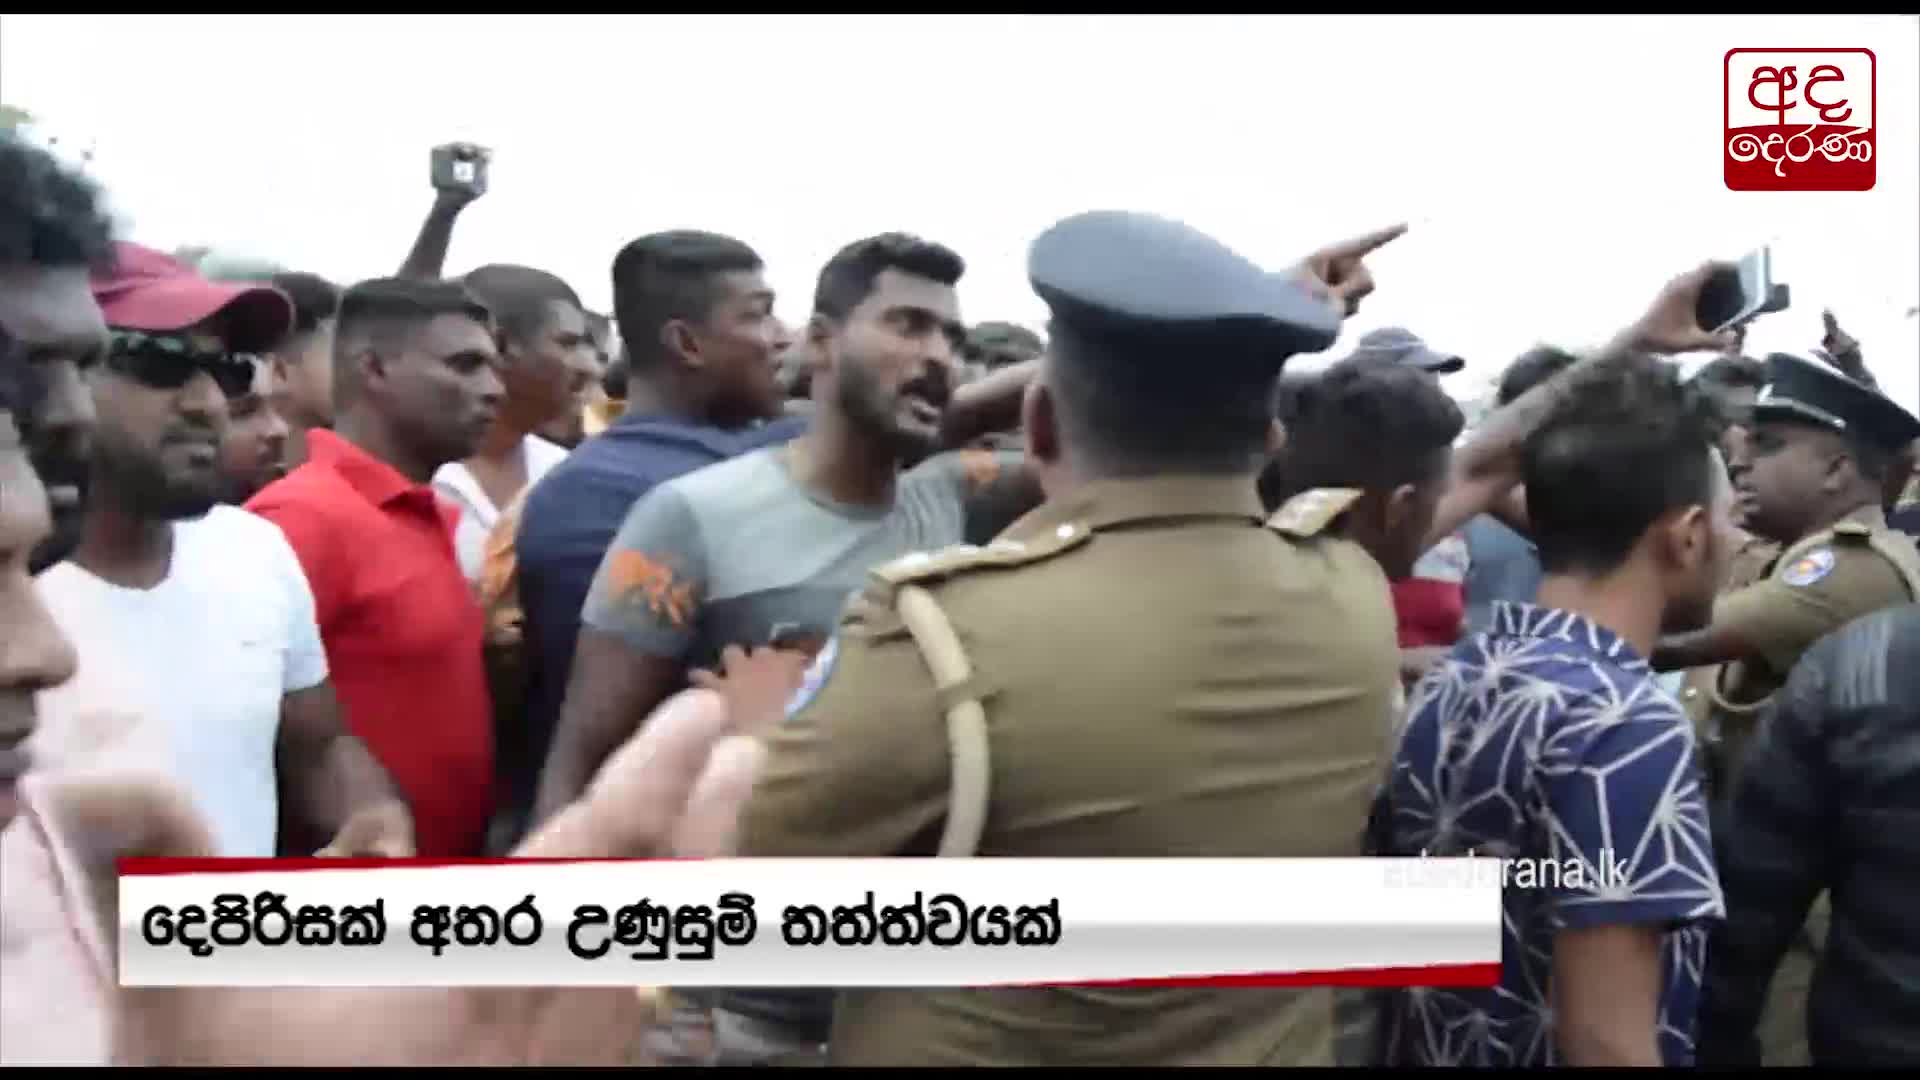 Tense situation in Kanniya over a religious place